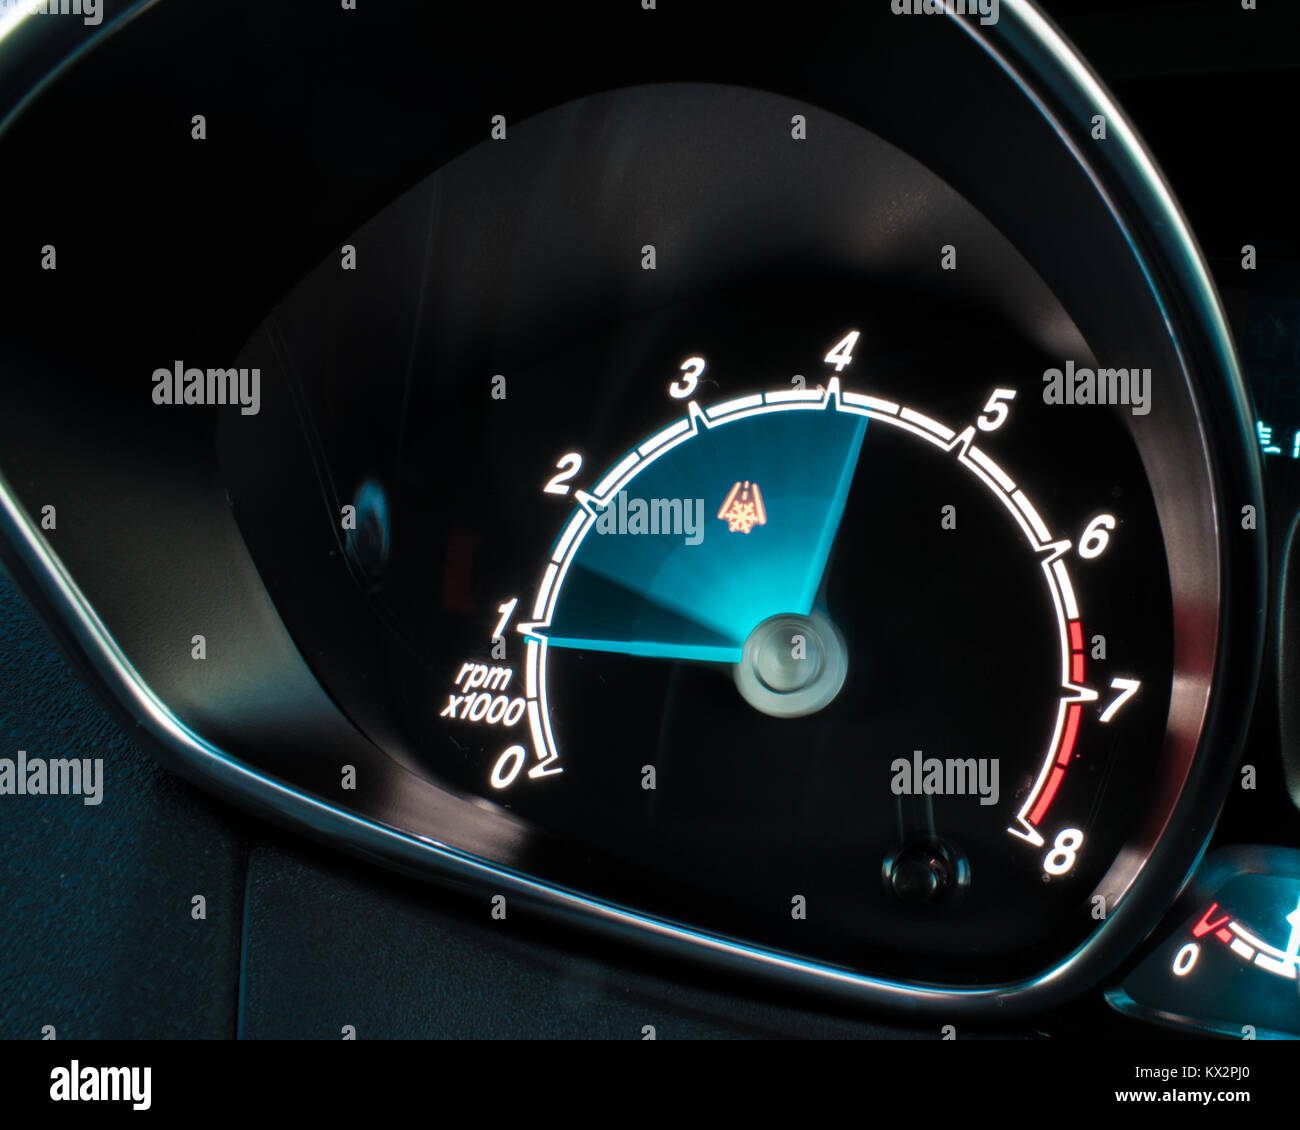 Tachometer/Rev-Counter/RPM Gauge lange Belichtung (Ford Fiesta) Stockbild